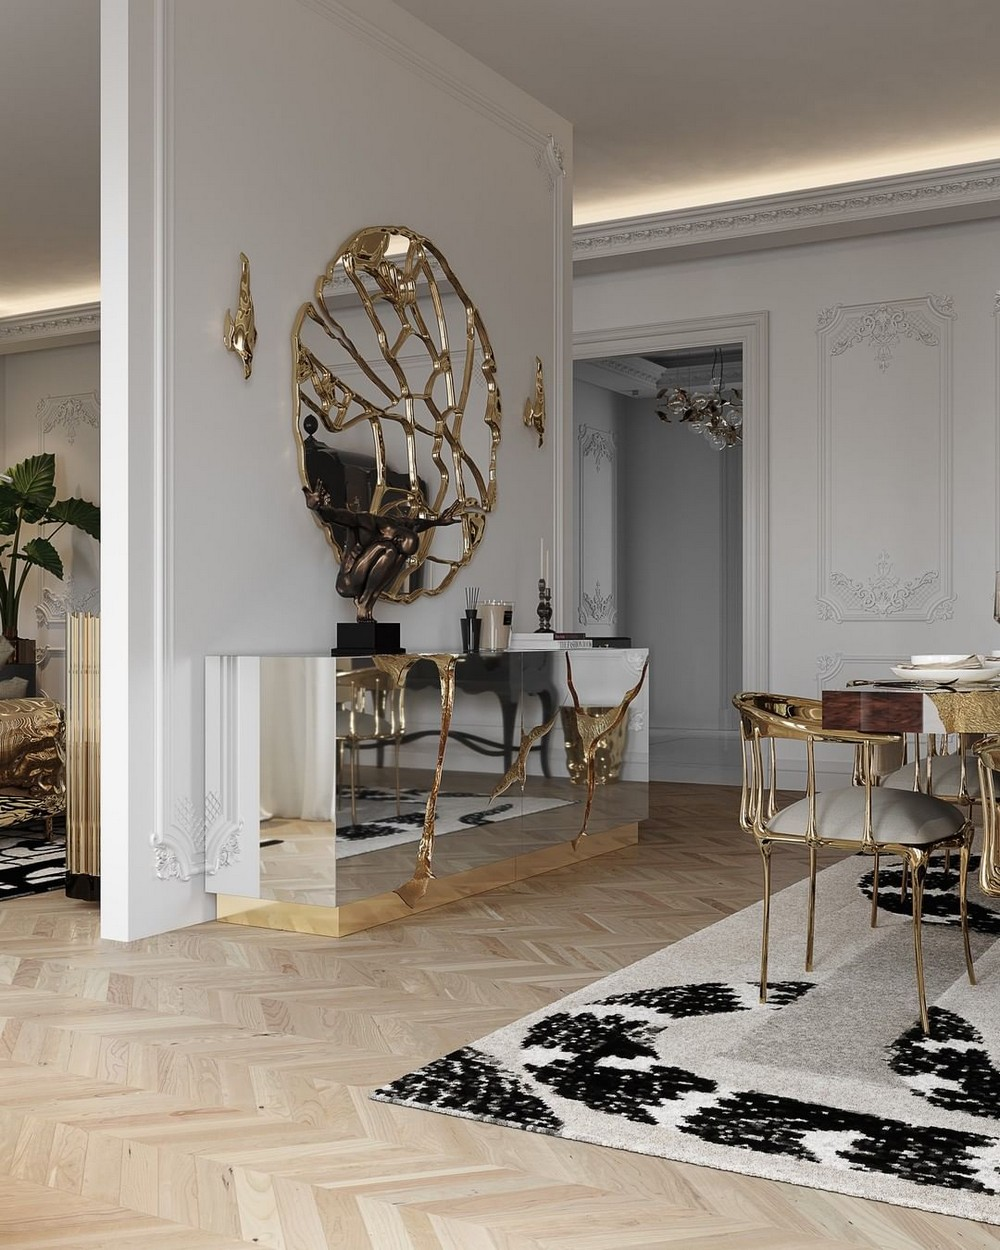 Get The Look Of This Luxury Dining Room Inside A Parisian Penthouse luxury dining room Get The Look Of This Luxury Dining Room Inside A Parisian Penthouse 146308926 3941193722577747 2572437716199205802 n